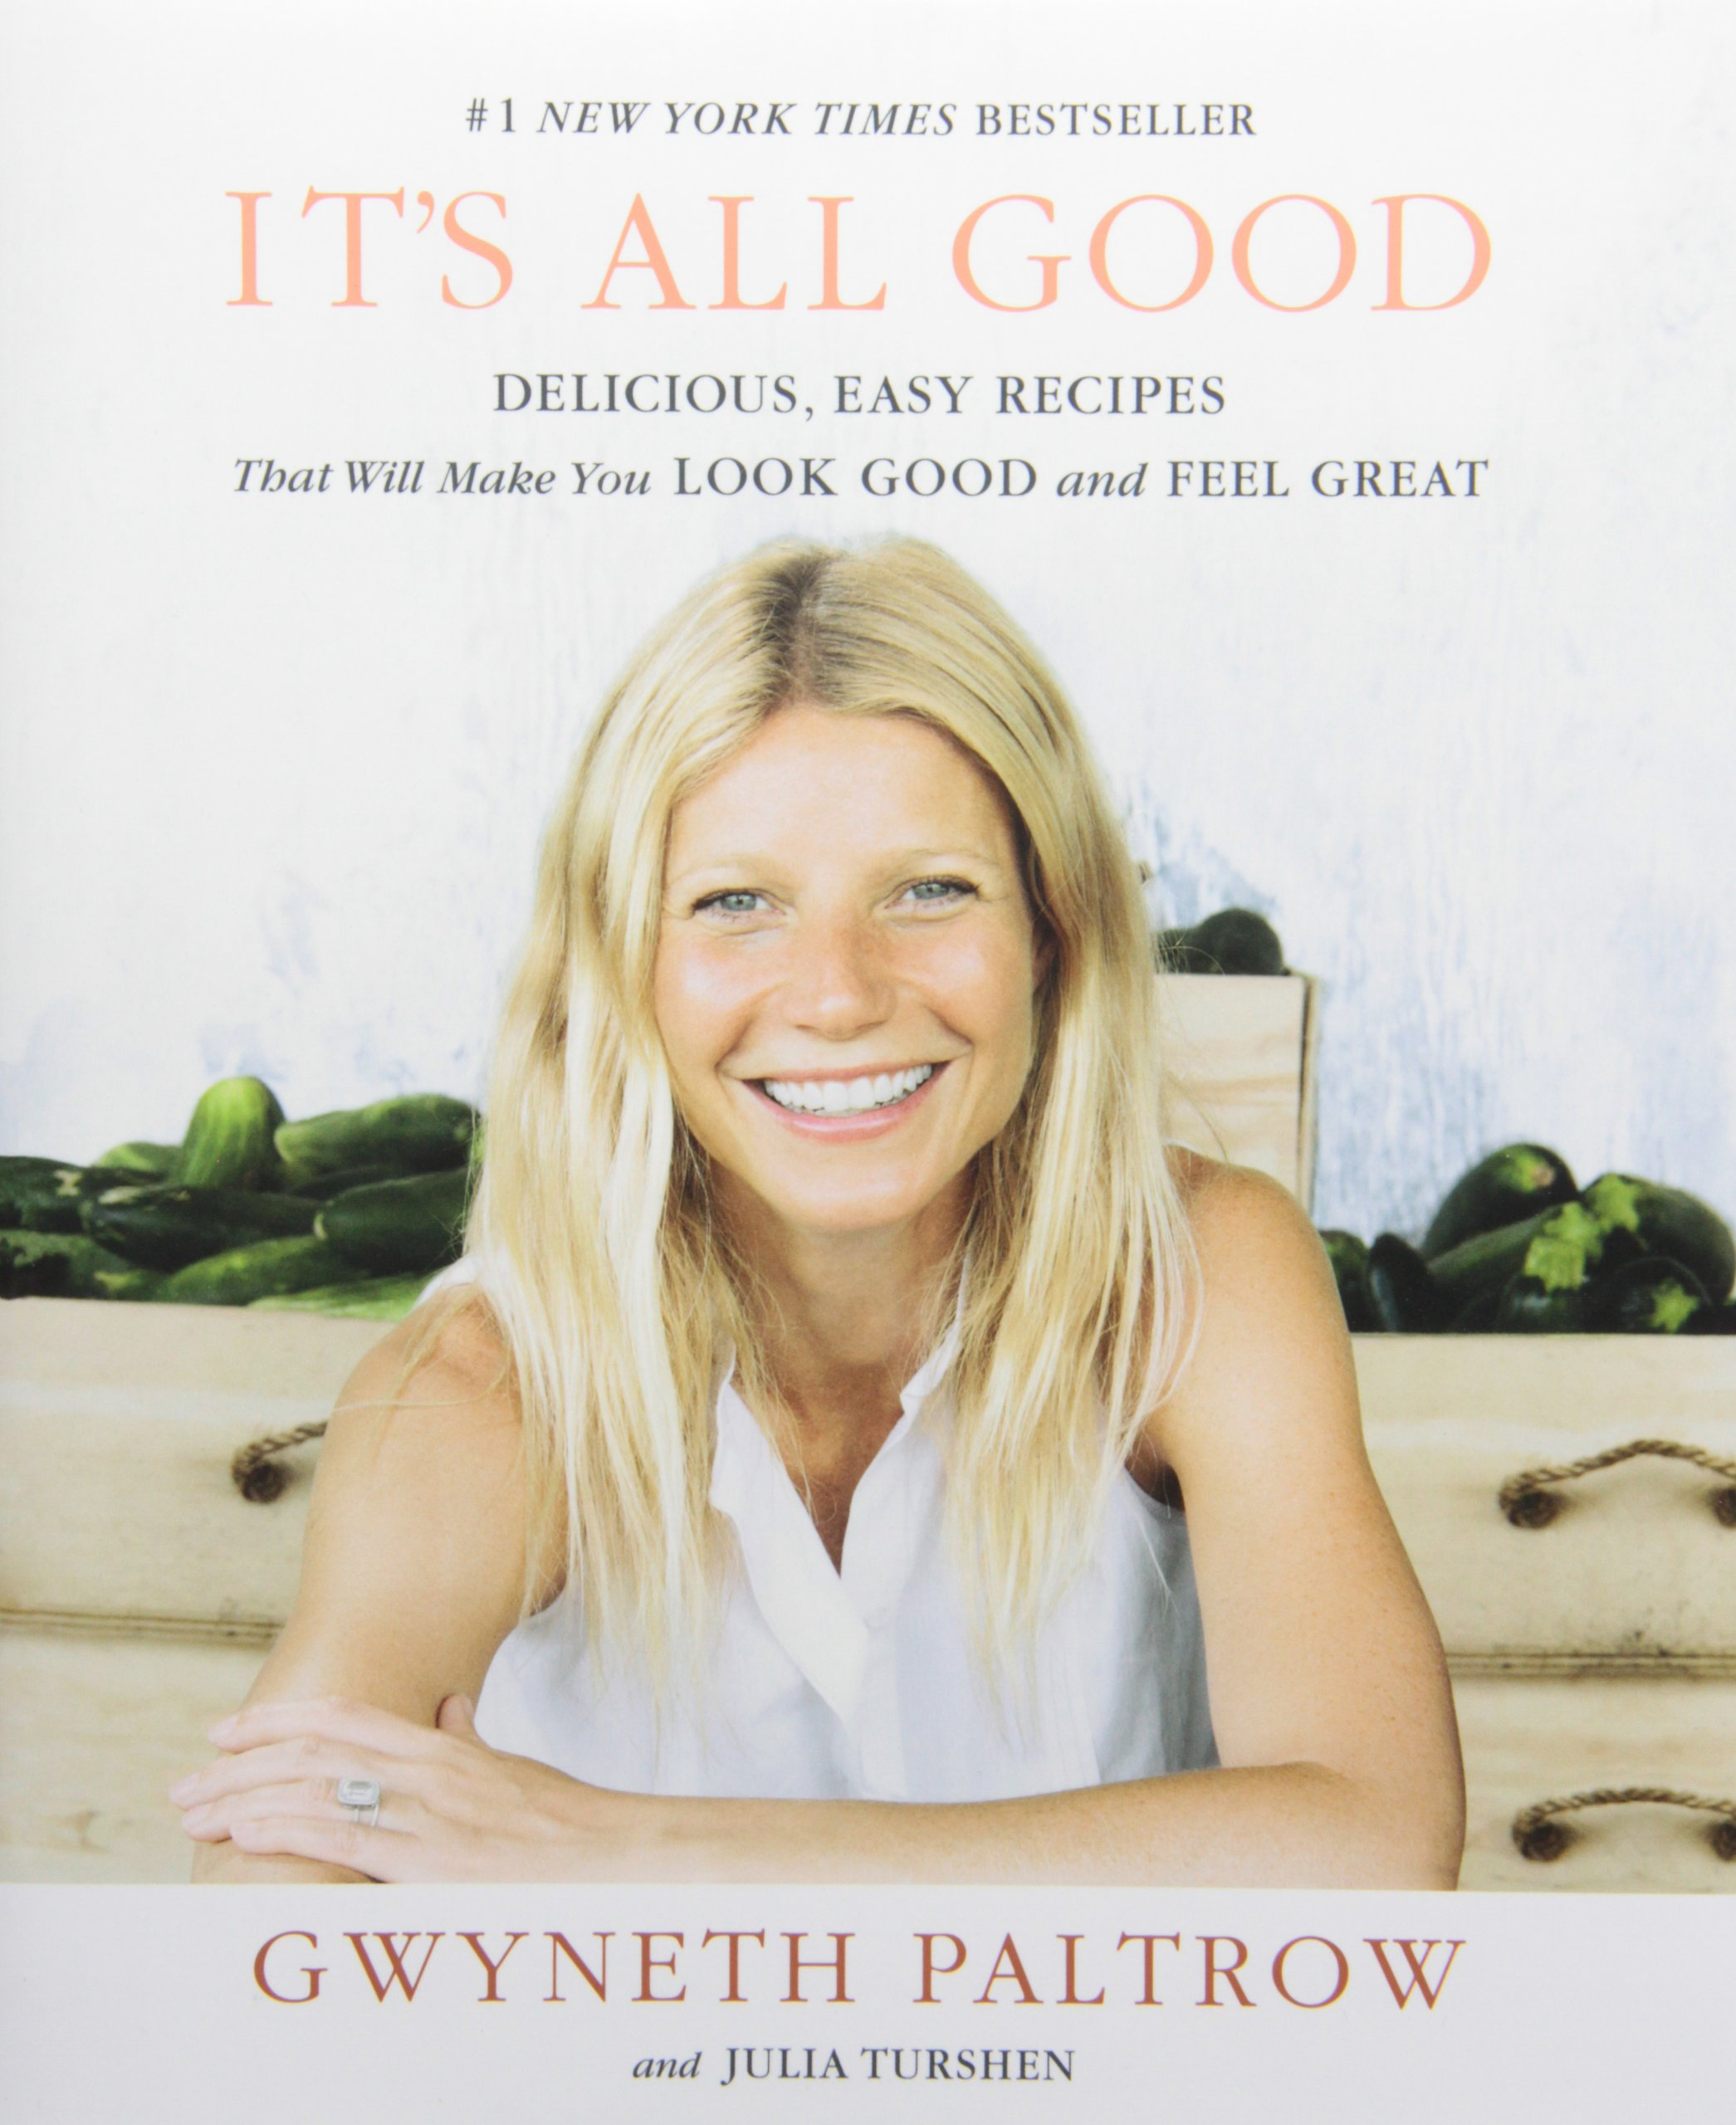 It's All Good - By Gwyneth Paltrow